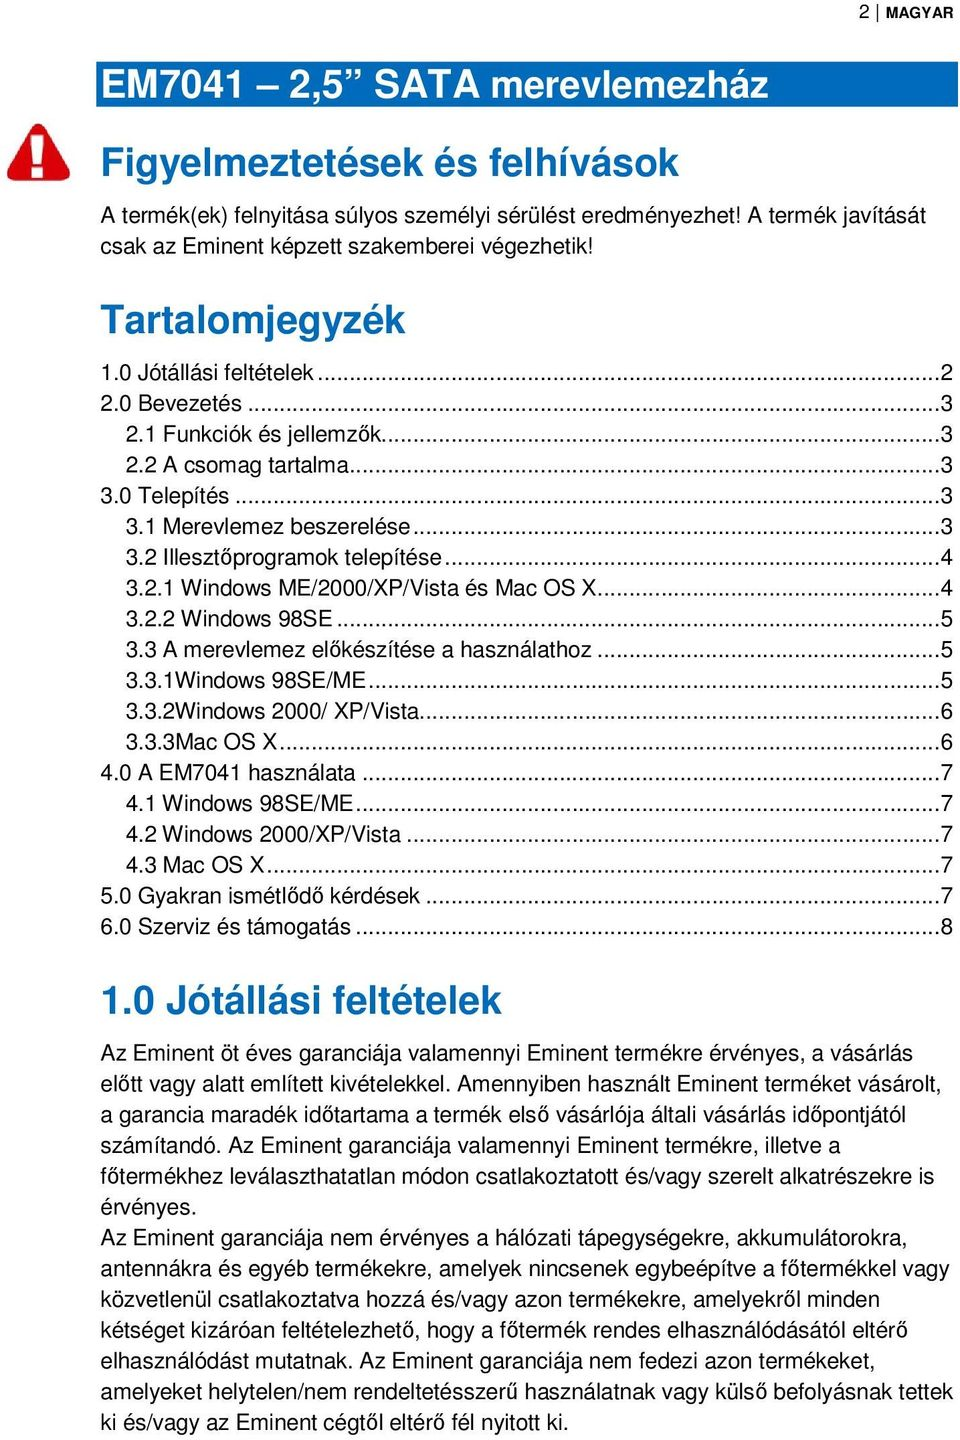 ..4 3.2.1 Windows ME/2000/XP/Vista és Mac OS X...4 3.2.2 Windows 98SE...5 3.3 A merevlemez elıkészítése a használathoz...5 3.3.1Windows 98SE/ME...5 3.3.2Windows 2000/ XP/Vista...6 3.3.3Mac OS X...6 4.